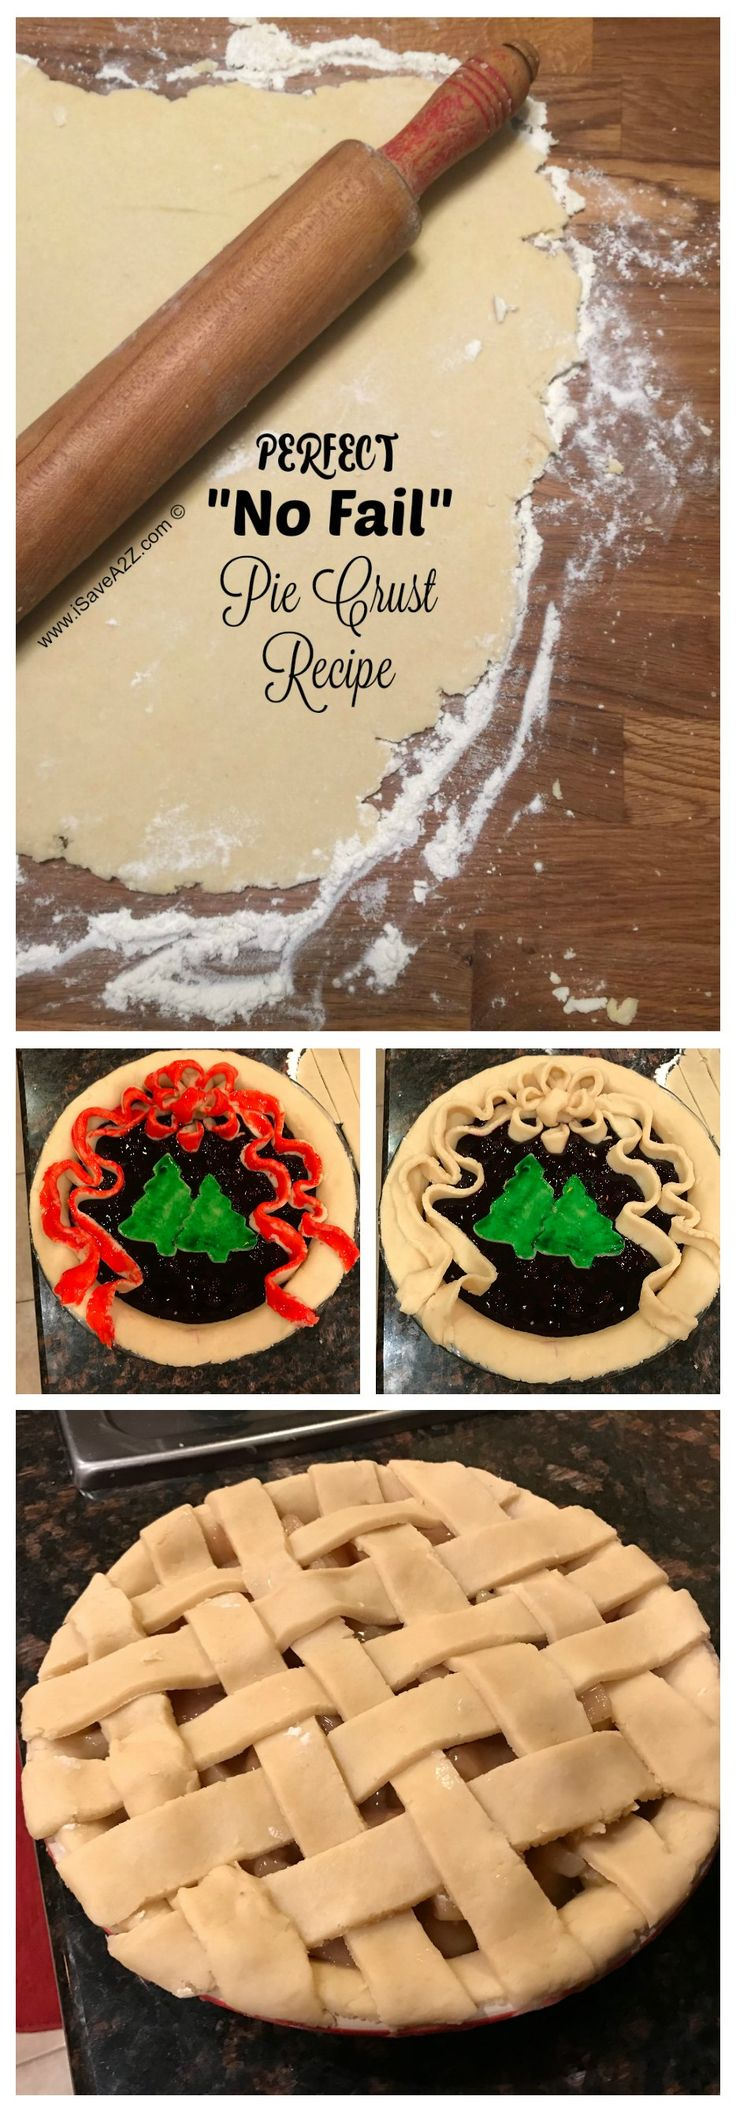 Here's to a PERFECT crust every single time! No Fail Pie Crust Recipe with Painted Crust!